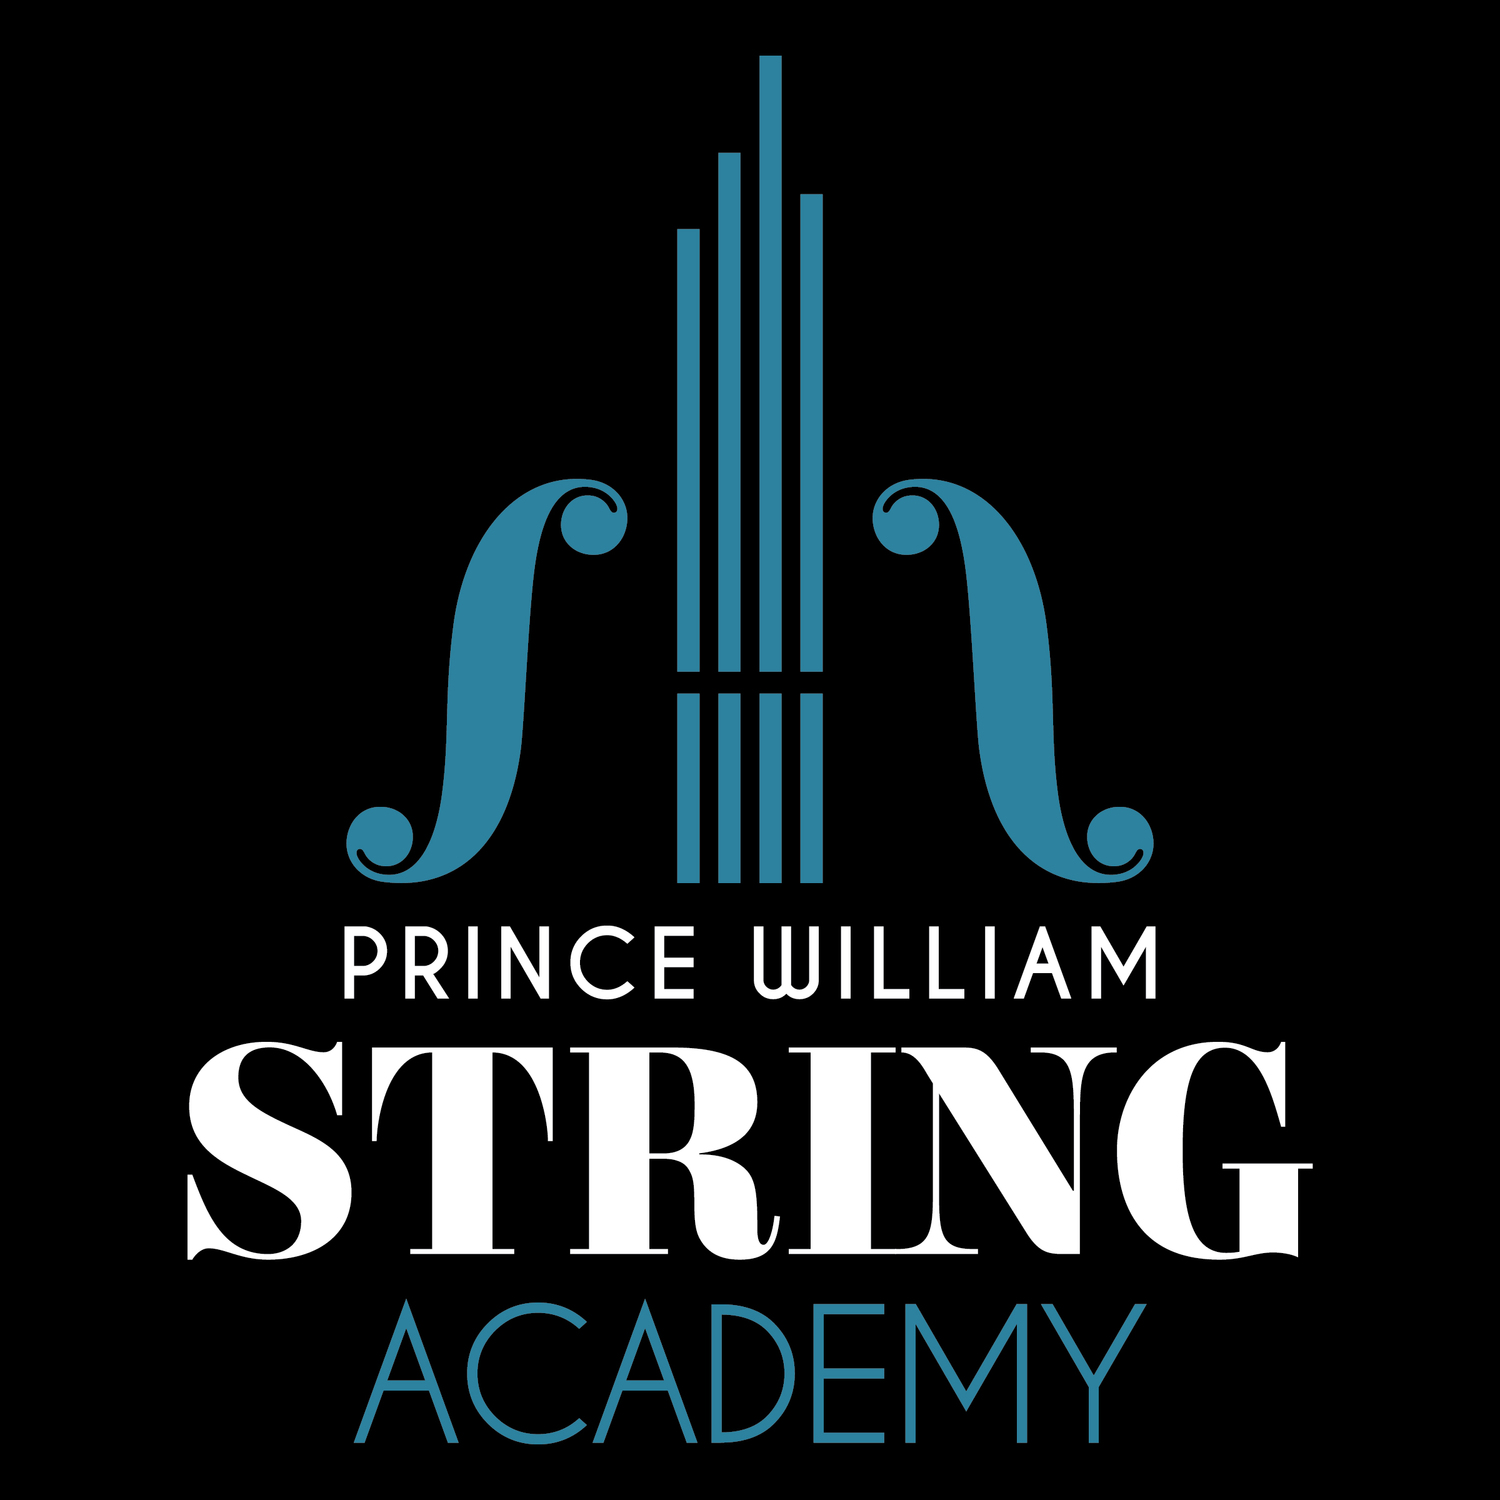 Prince William String Academy